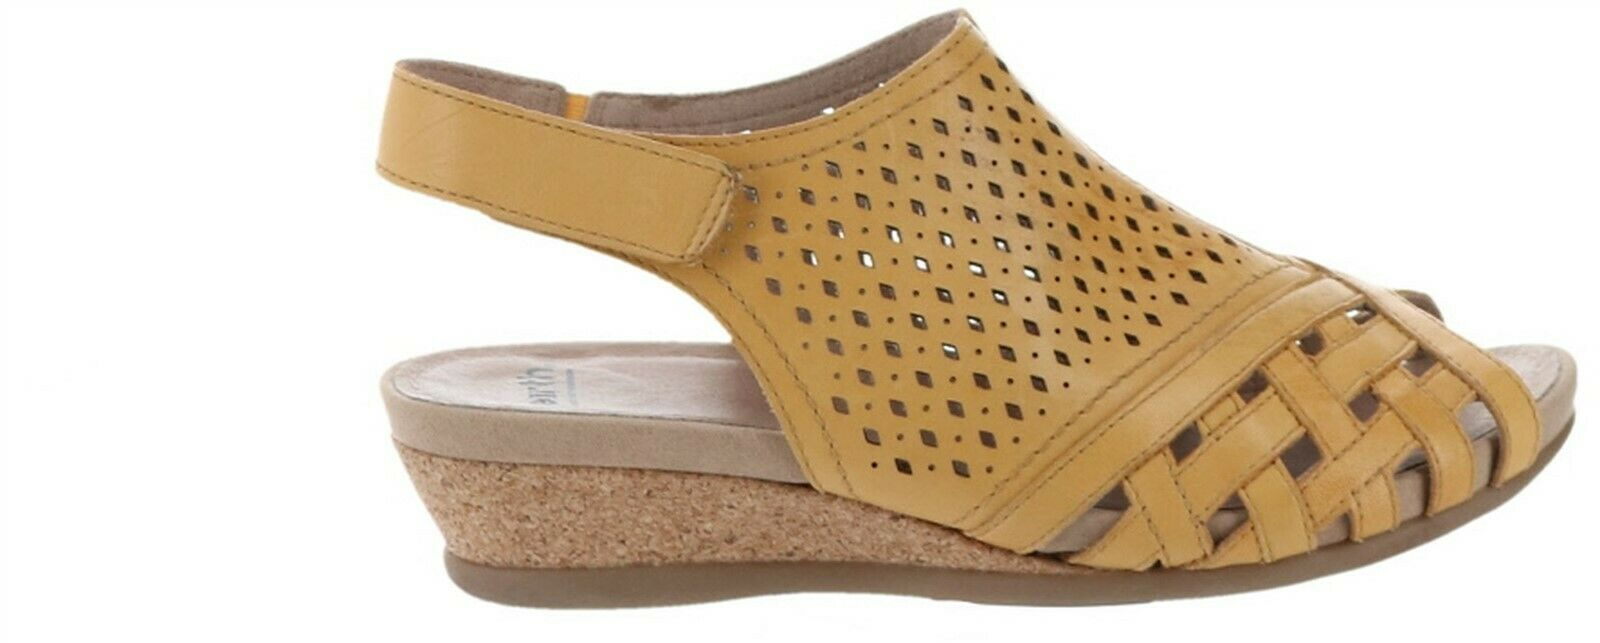 Earth Leather Perforated Wedge Sandals-Pisa Galli Amber Yellow 8M NEW A346894 image 1